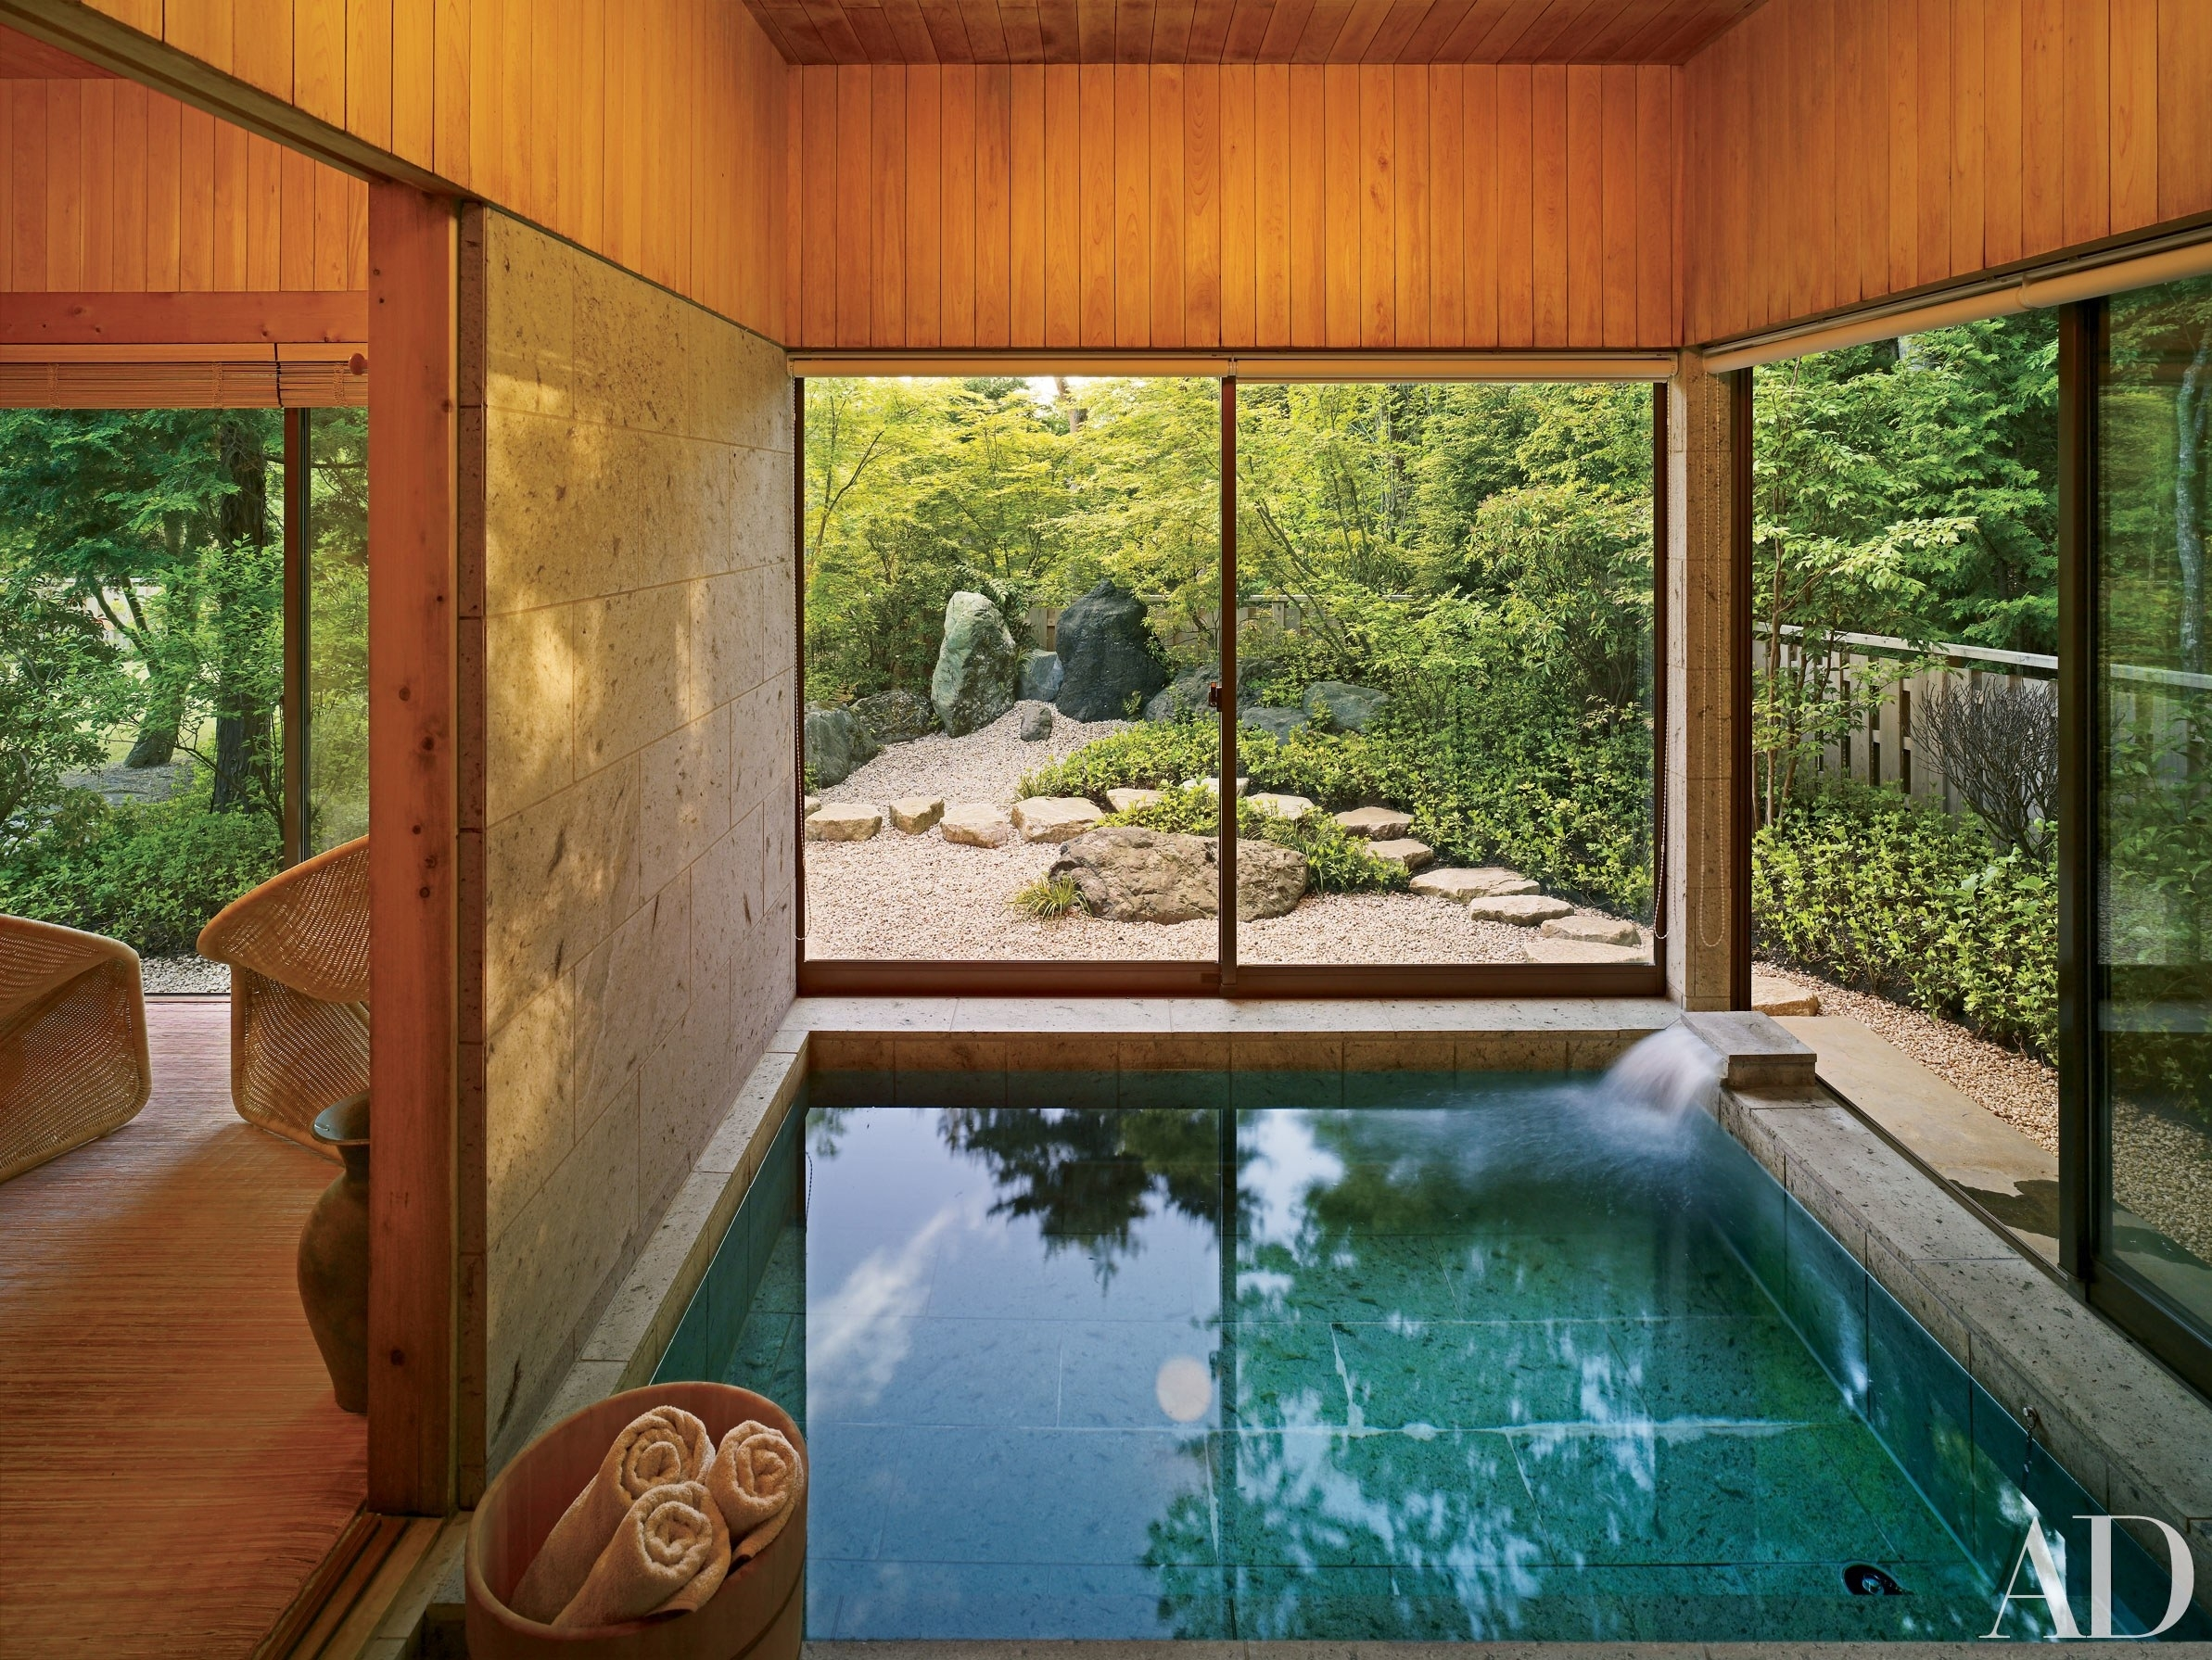 Go Inside These Beautiful Japanese Houses Photos | Architectural Digest within Japanese House Design Garden Room Inside